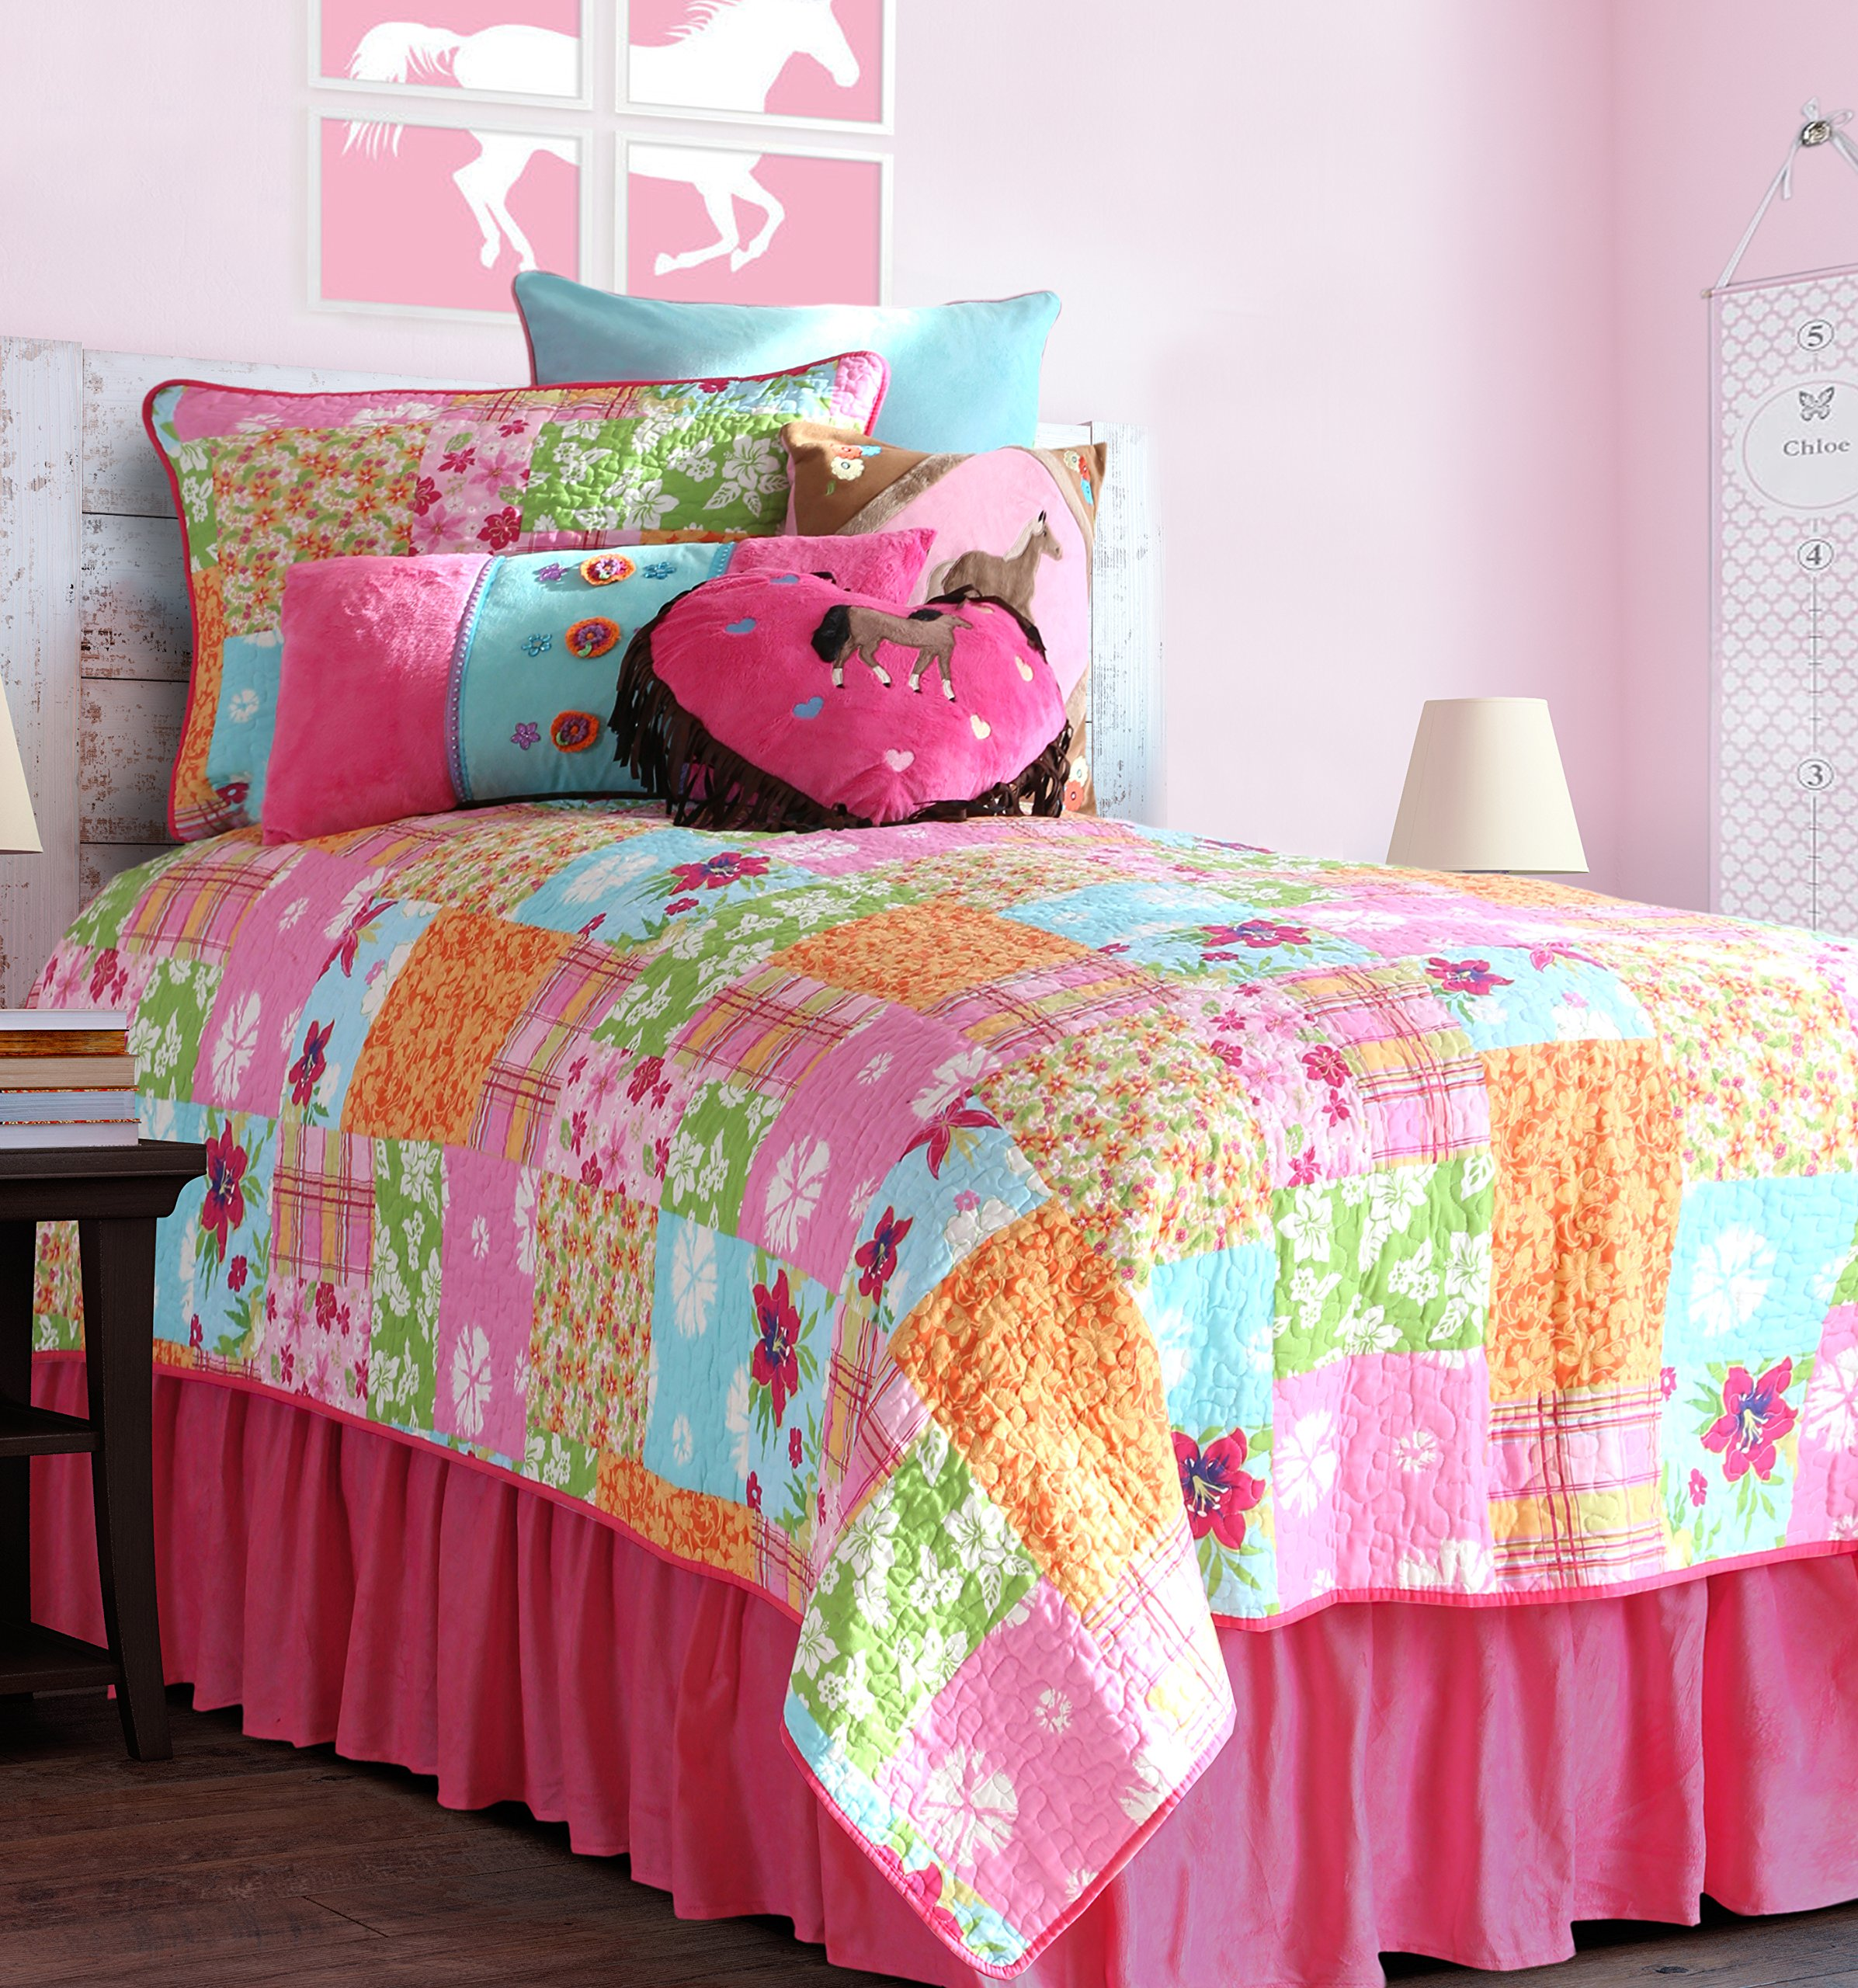 Carstens 100% Cotton Patchwork Country Flower Girls Quilt, Twin